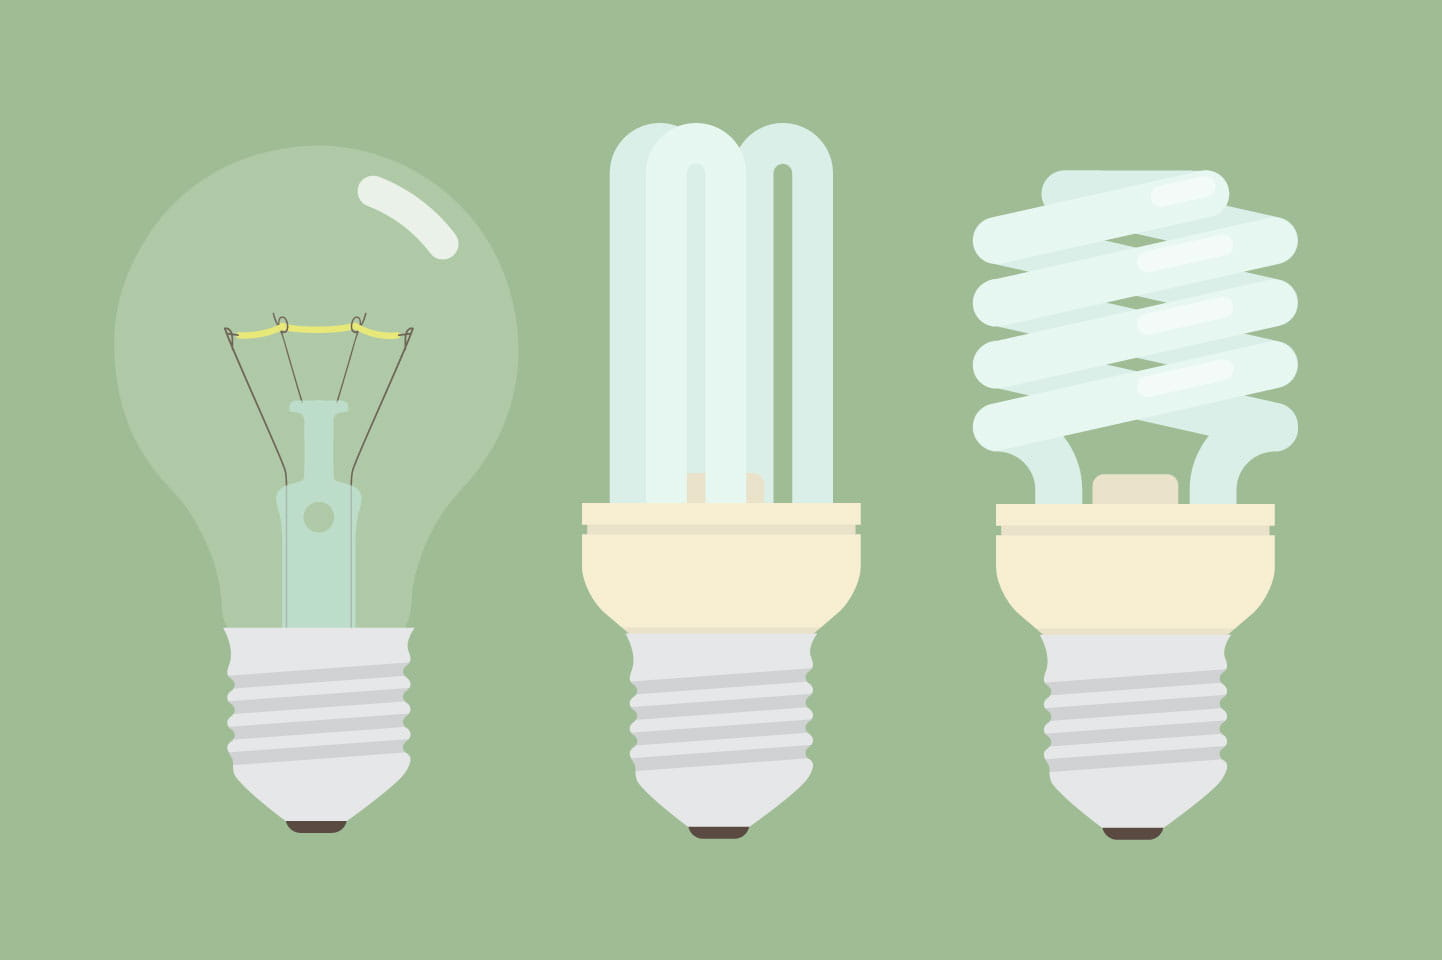 Tips for choosing energy-saving light bulbs